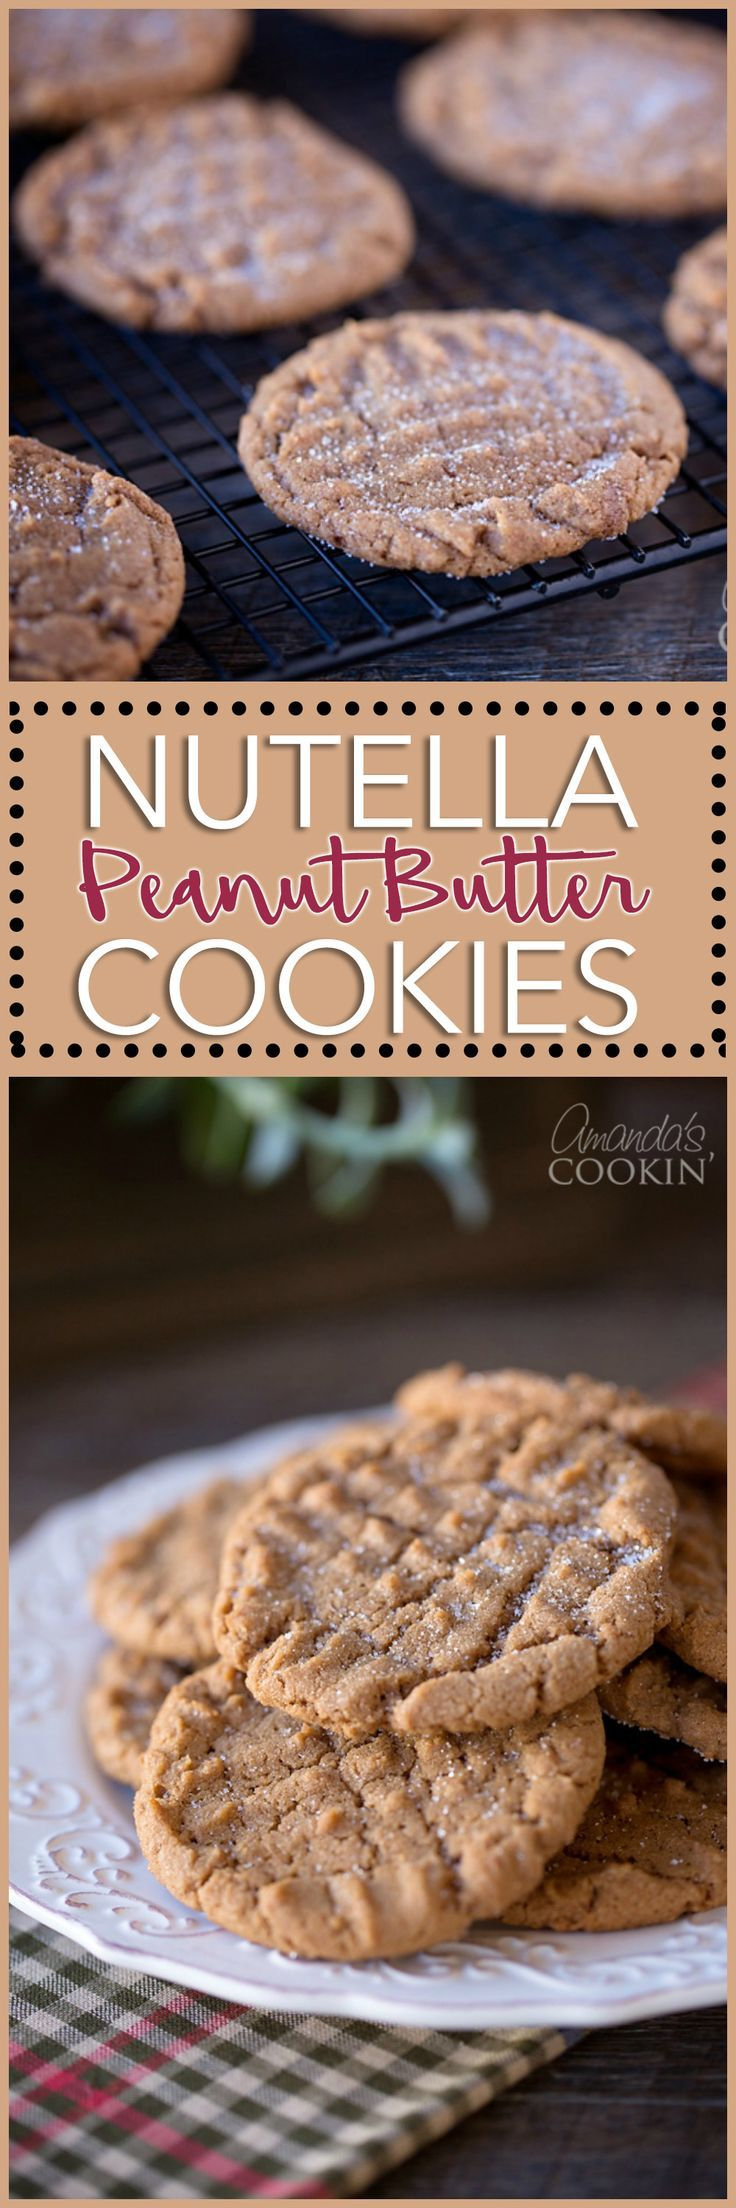 You love Nutella and you love peanut butter cookies. Nutella Peanut Butter Cookies are the best of both of these delicious cookie worlds!